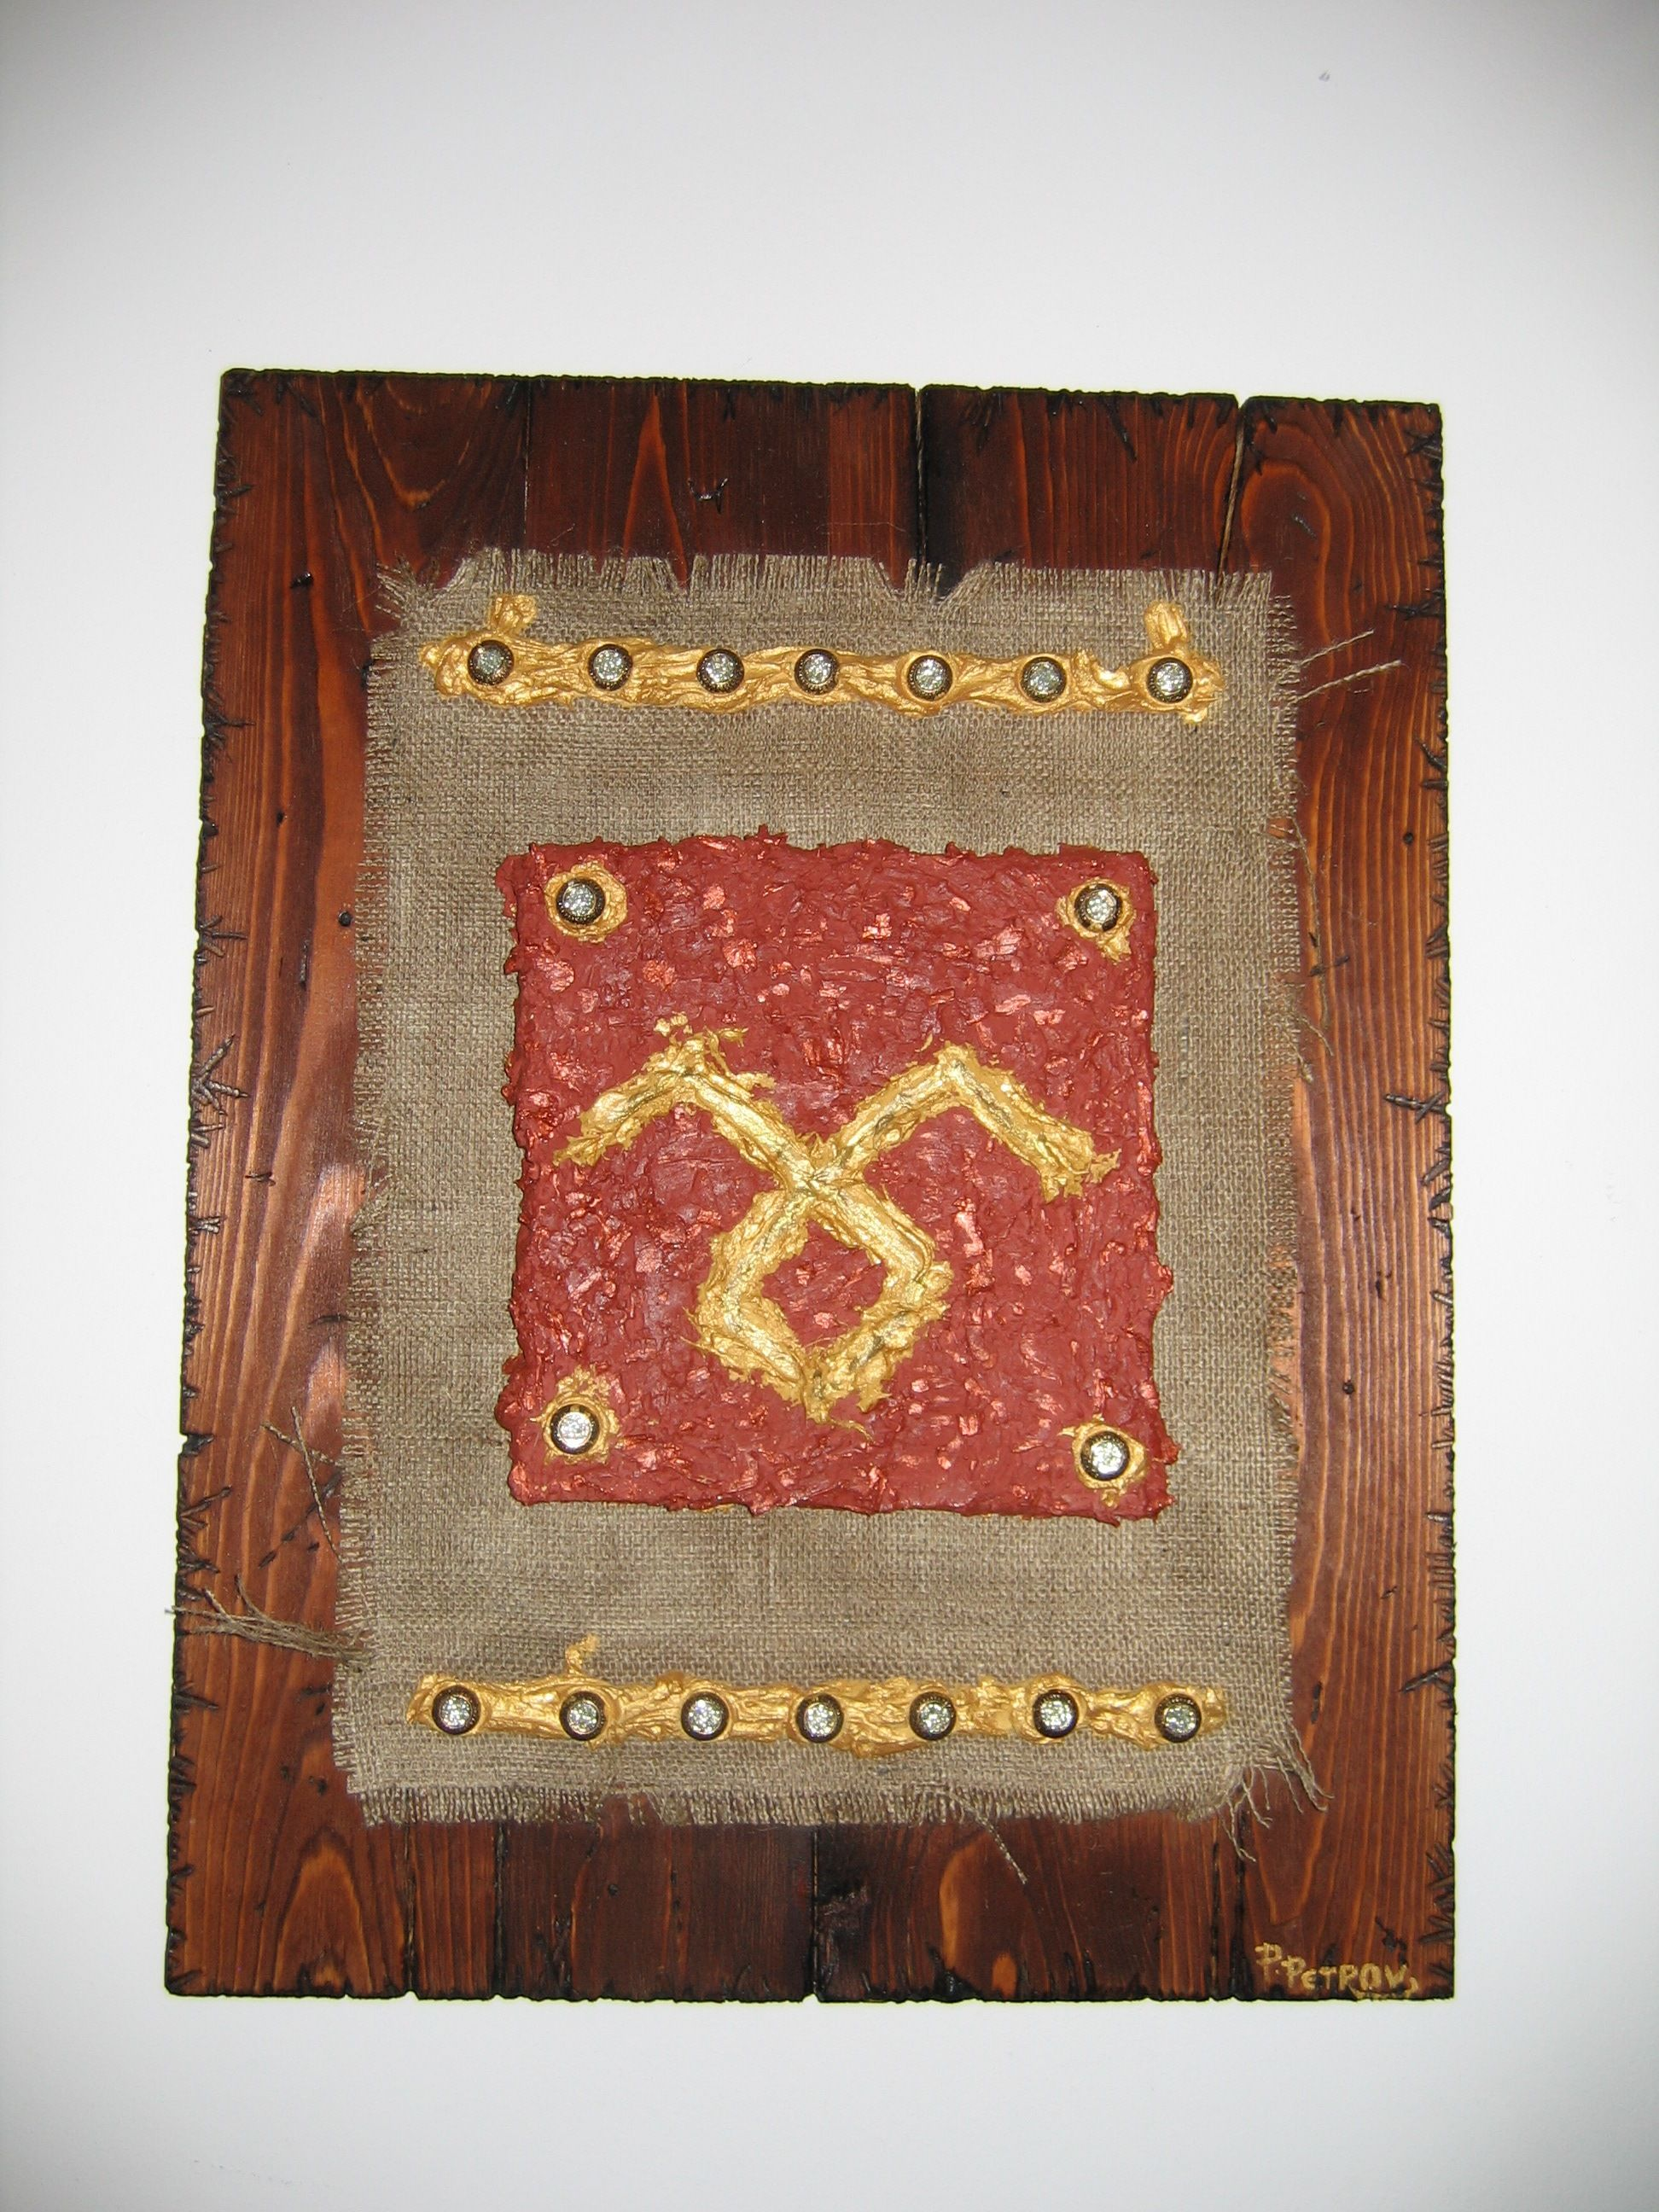 The symbol protection of life the symbol depicted in the picture the symbol depicted in the picture is one of the most common proto bulgarian runic signs that had reached our days biocorpaavc Choice Image